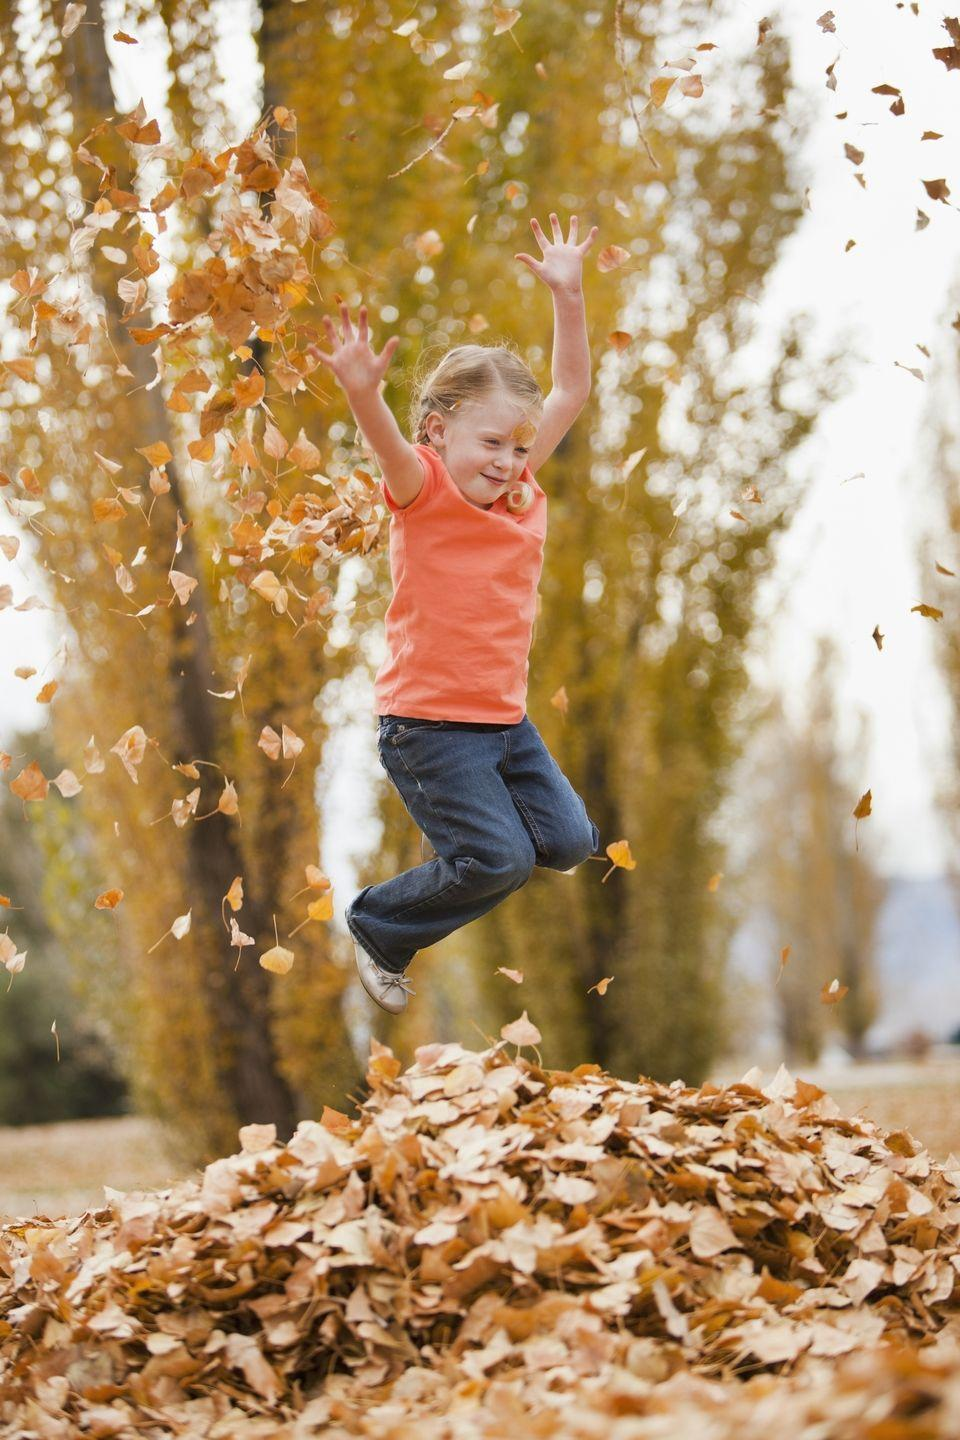 "<p>The best way to make raking leaves less of a chore? Promise your kids a chance to dive right into the biggest pile in the yard—after which you'll need all hands on deck to pack them up into trash bags. </p><p><a class=""link rapid-noclick-resp"" href=""https://www.amazon.com/Inch-Adjustable-Garden-Leaf-Rake/dp/B00H0D7ISC/ref=sr_1_1?tag=syn-yahoo-20&ascsubtag=%5Bartid%7C10050.g.2633%5Bsrc%7Cyahoo-us"" rel=""nofollow noopener"" target=""_blank"" data-ylk=""slk:SHOP RAKES"">SHOP RAKES</a></p>"